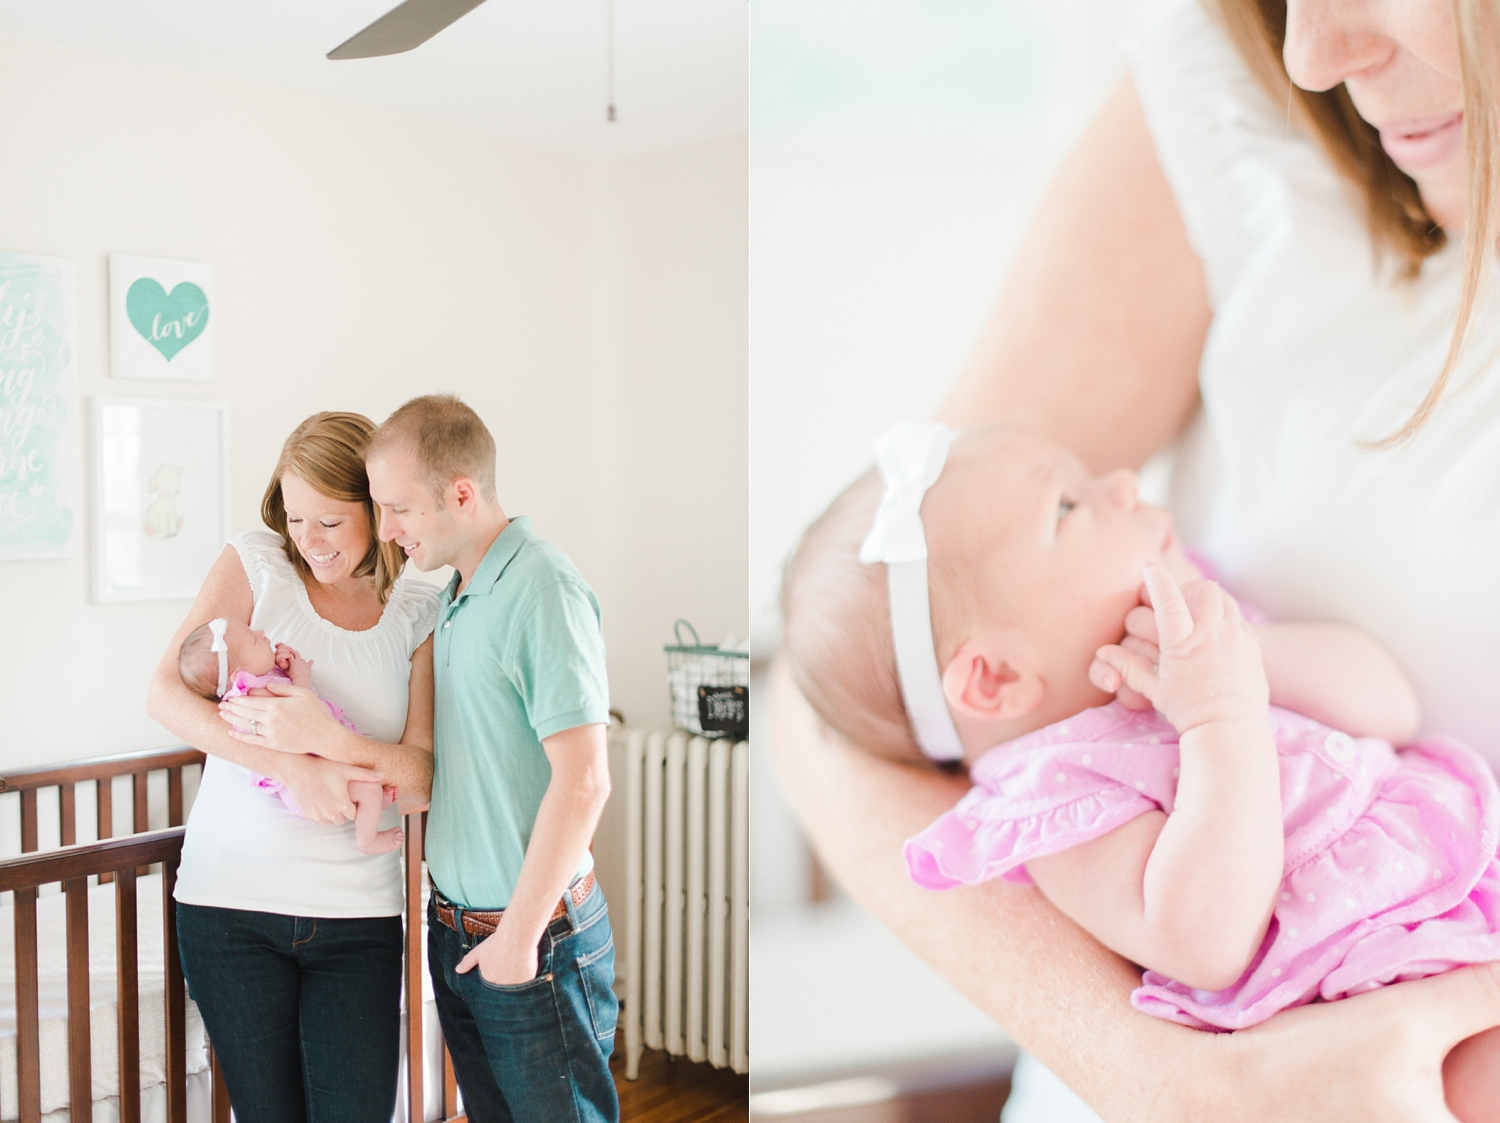 richmond_family_newborn photographer_0009.jpg